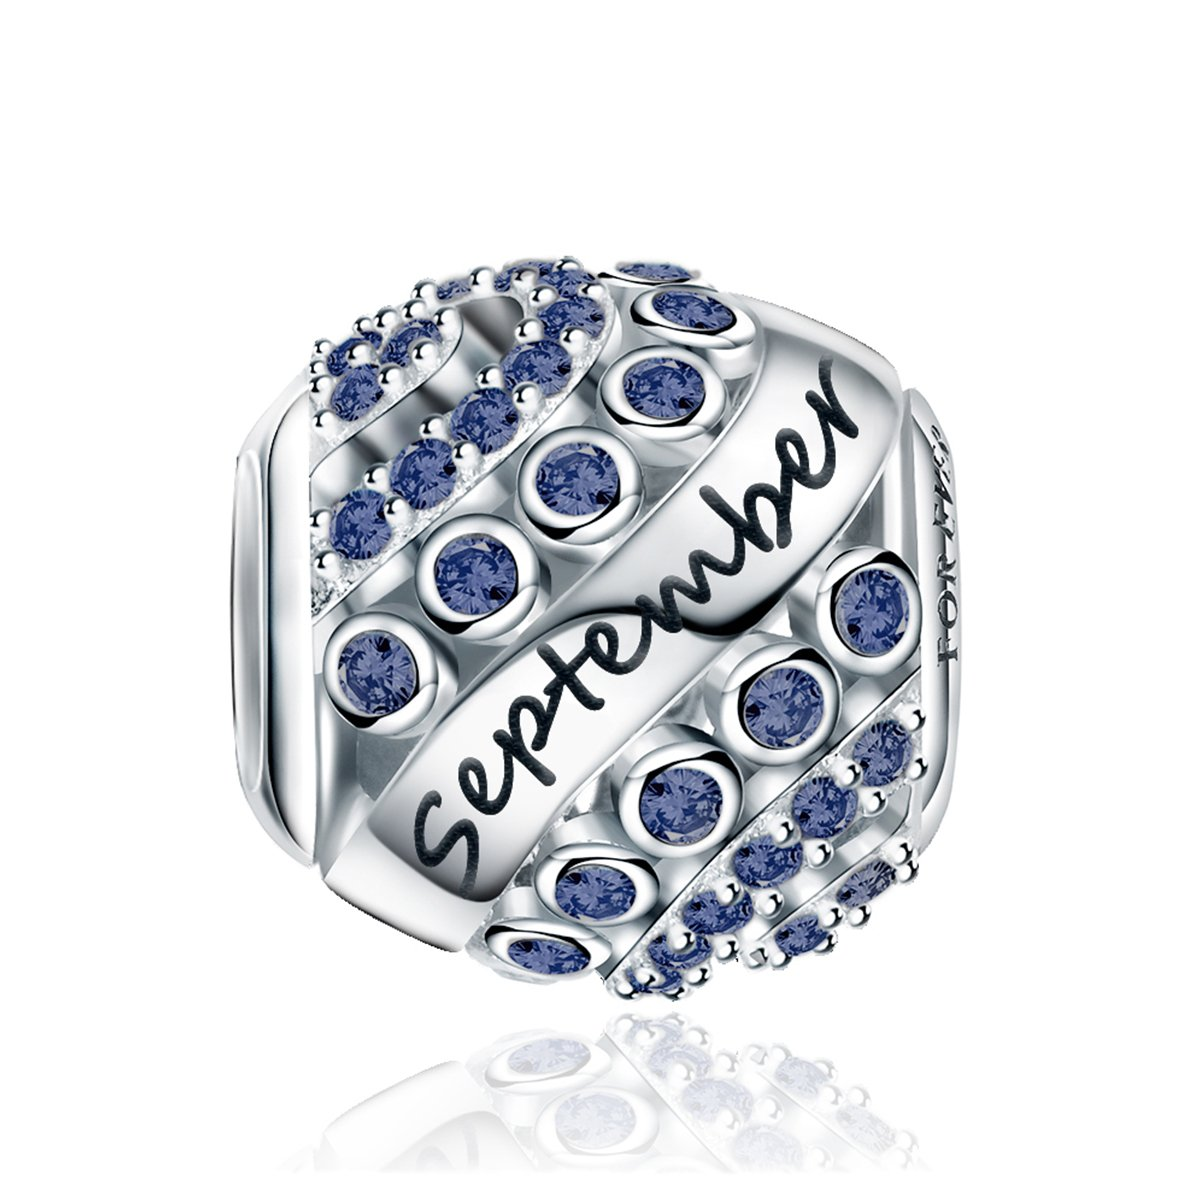 FOREVER QUEEN September Birthstone Charms for Pandora Charms Bracelet- 925 Sterling Silver Bead Openwork Charms, Happy Birthday Charms for Bracelet and Necklace FQ0004-9 by FOREVER QUEEN